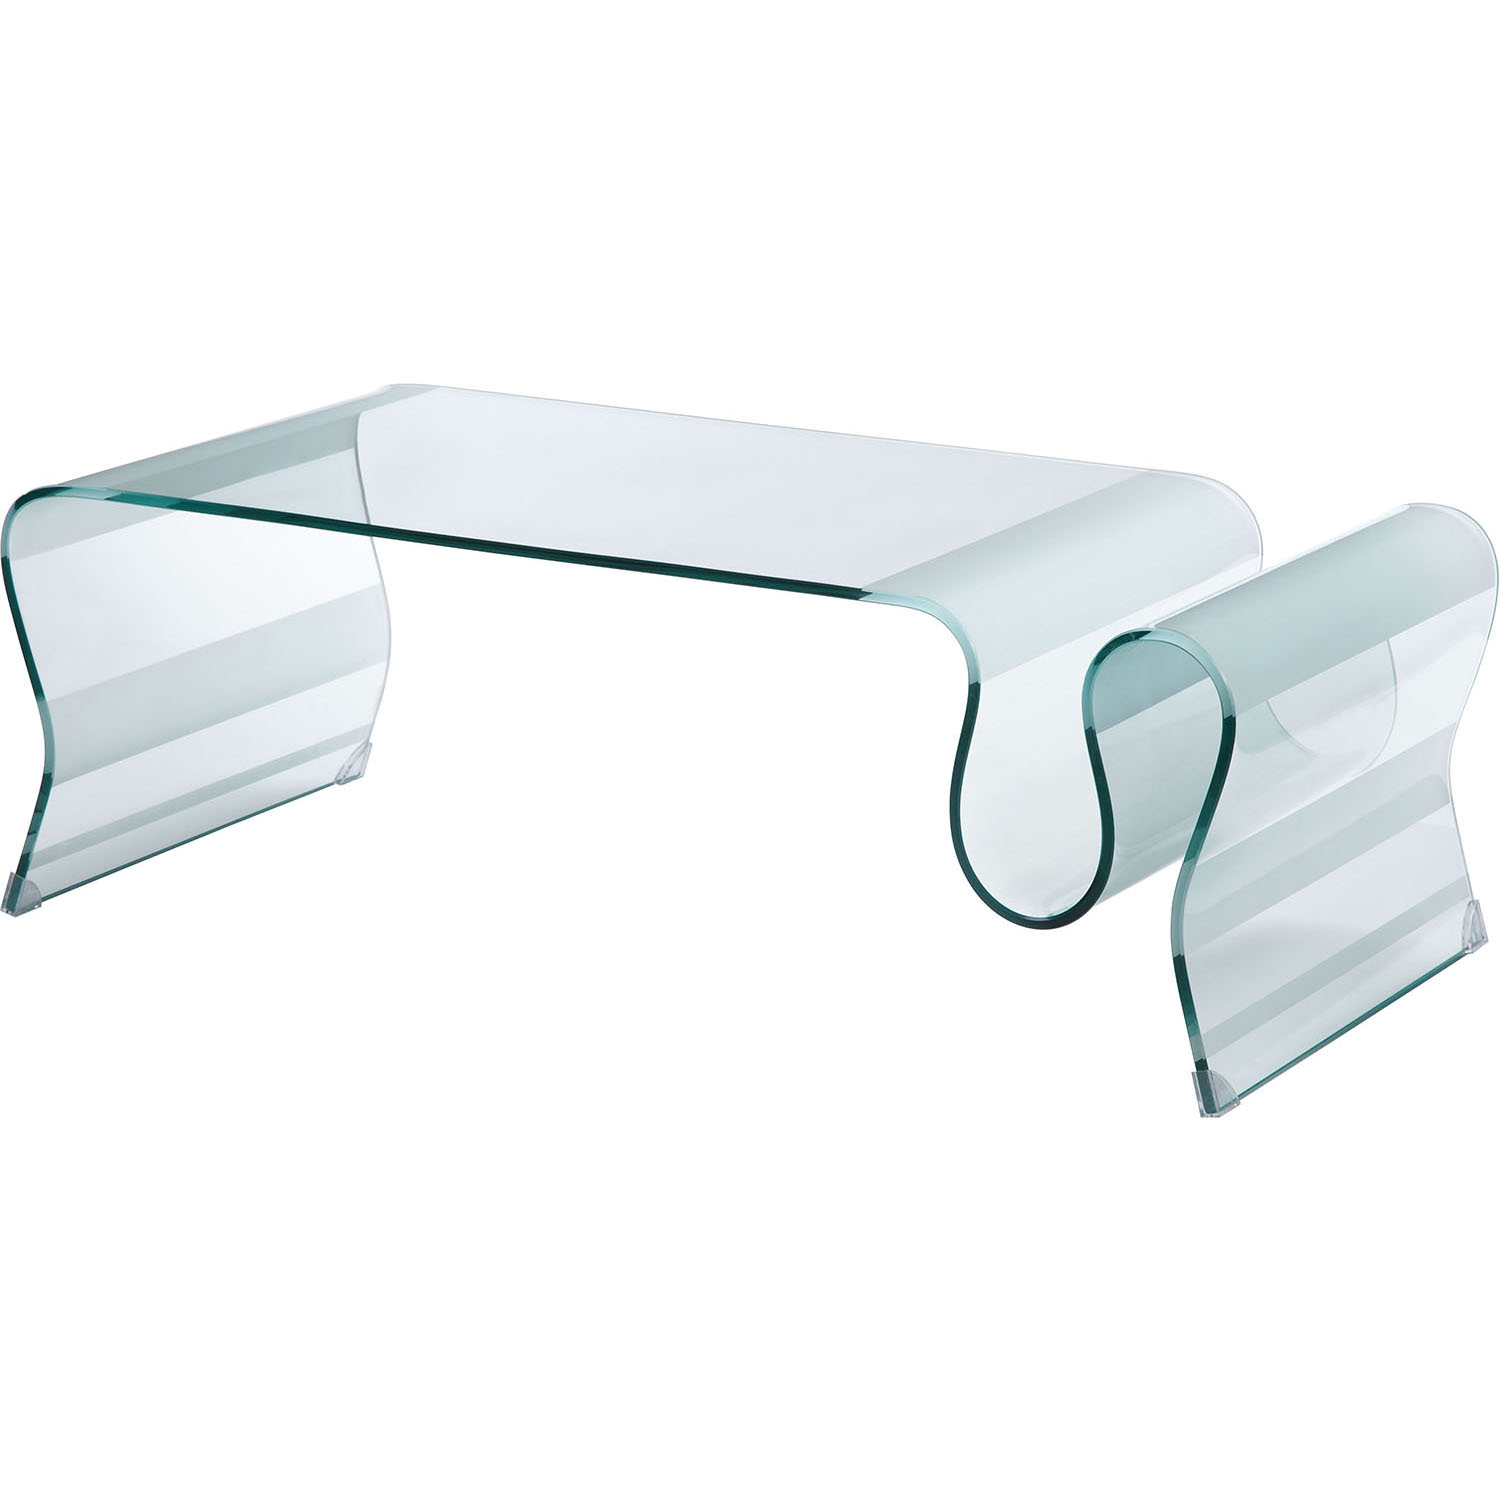 View Modern Discovery Coffee Table Clear 15 2476